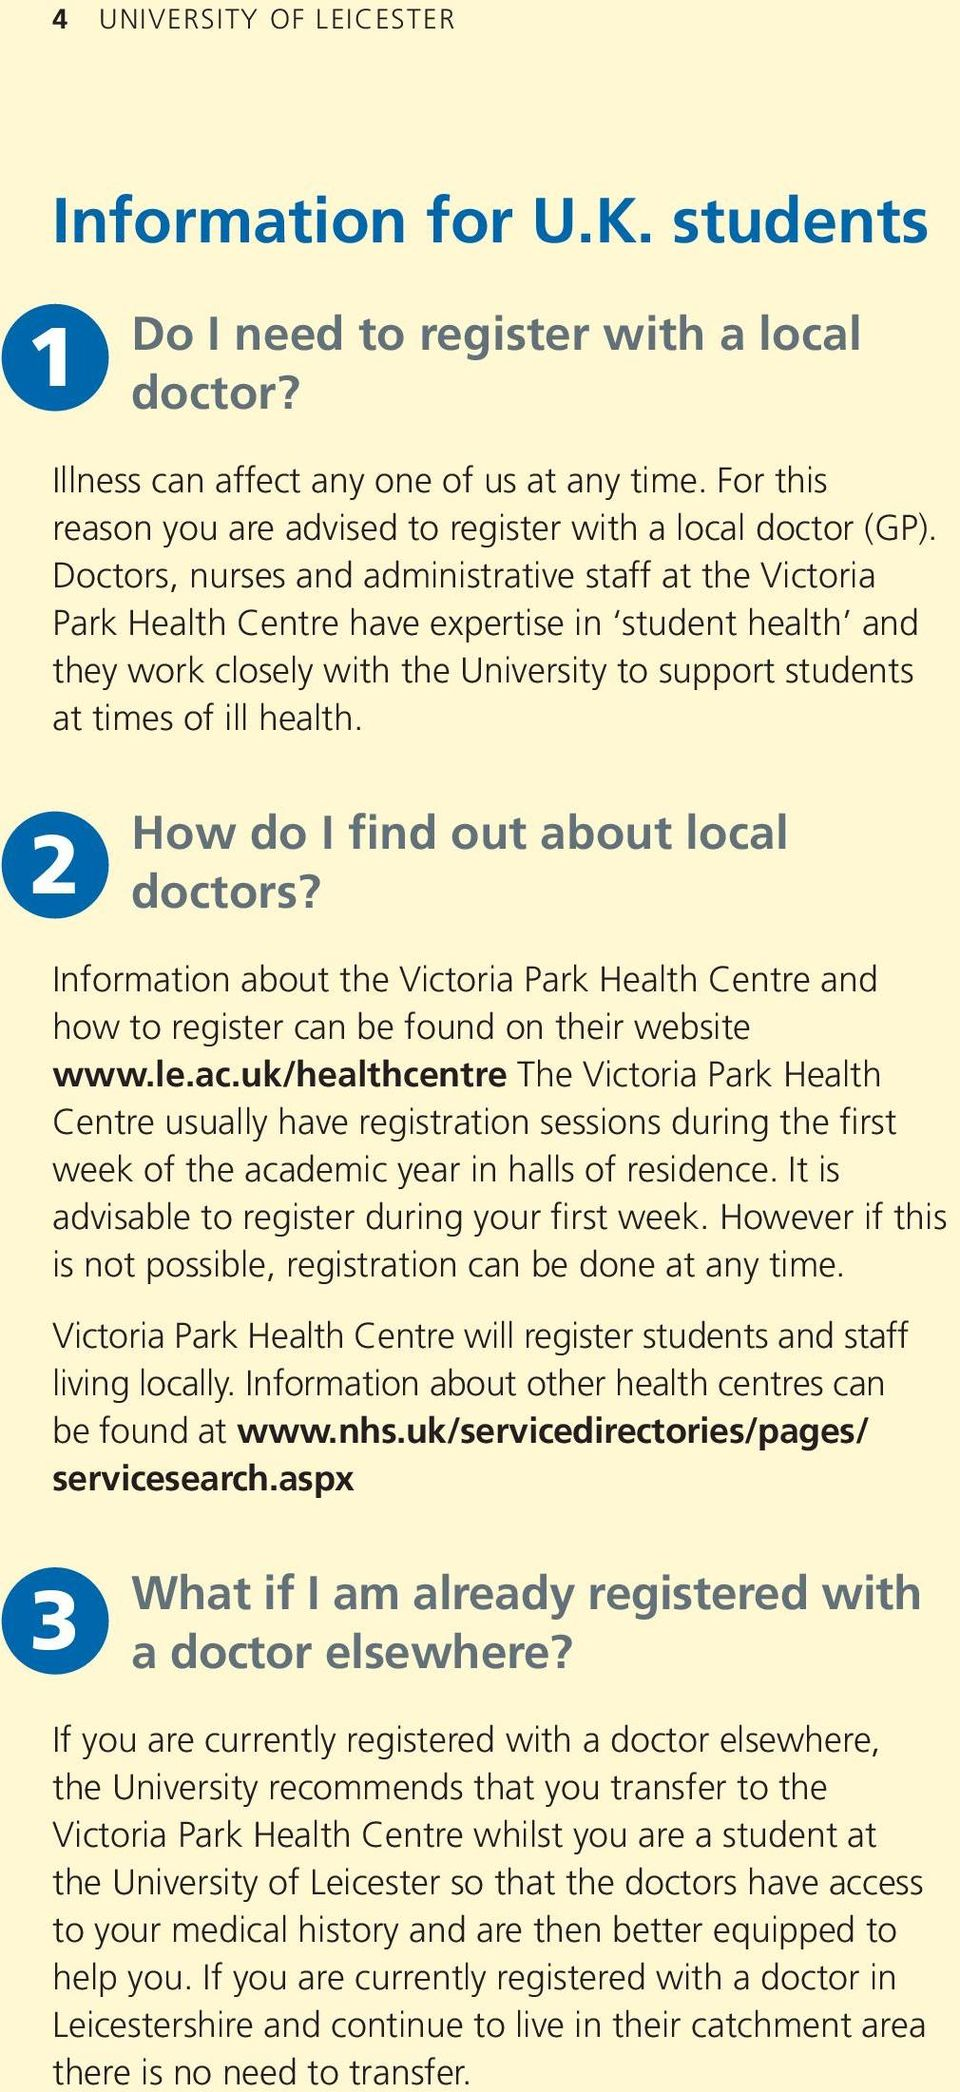 Doctors, nurses and administrative staff at the Victoria Park Health Centre have expertise in student health and they work closely with the University to support students at times of ill health.